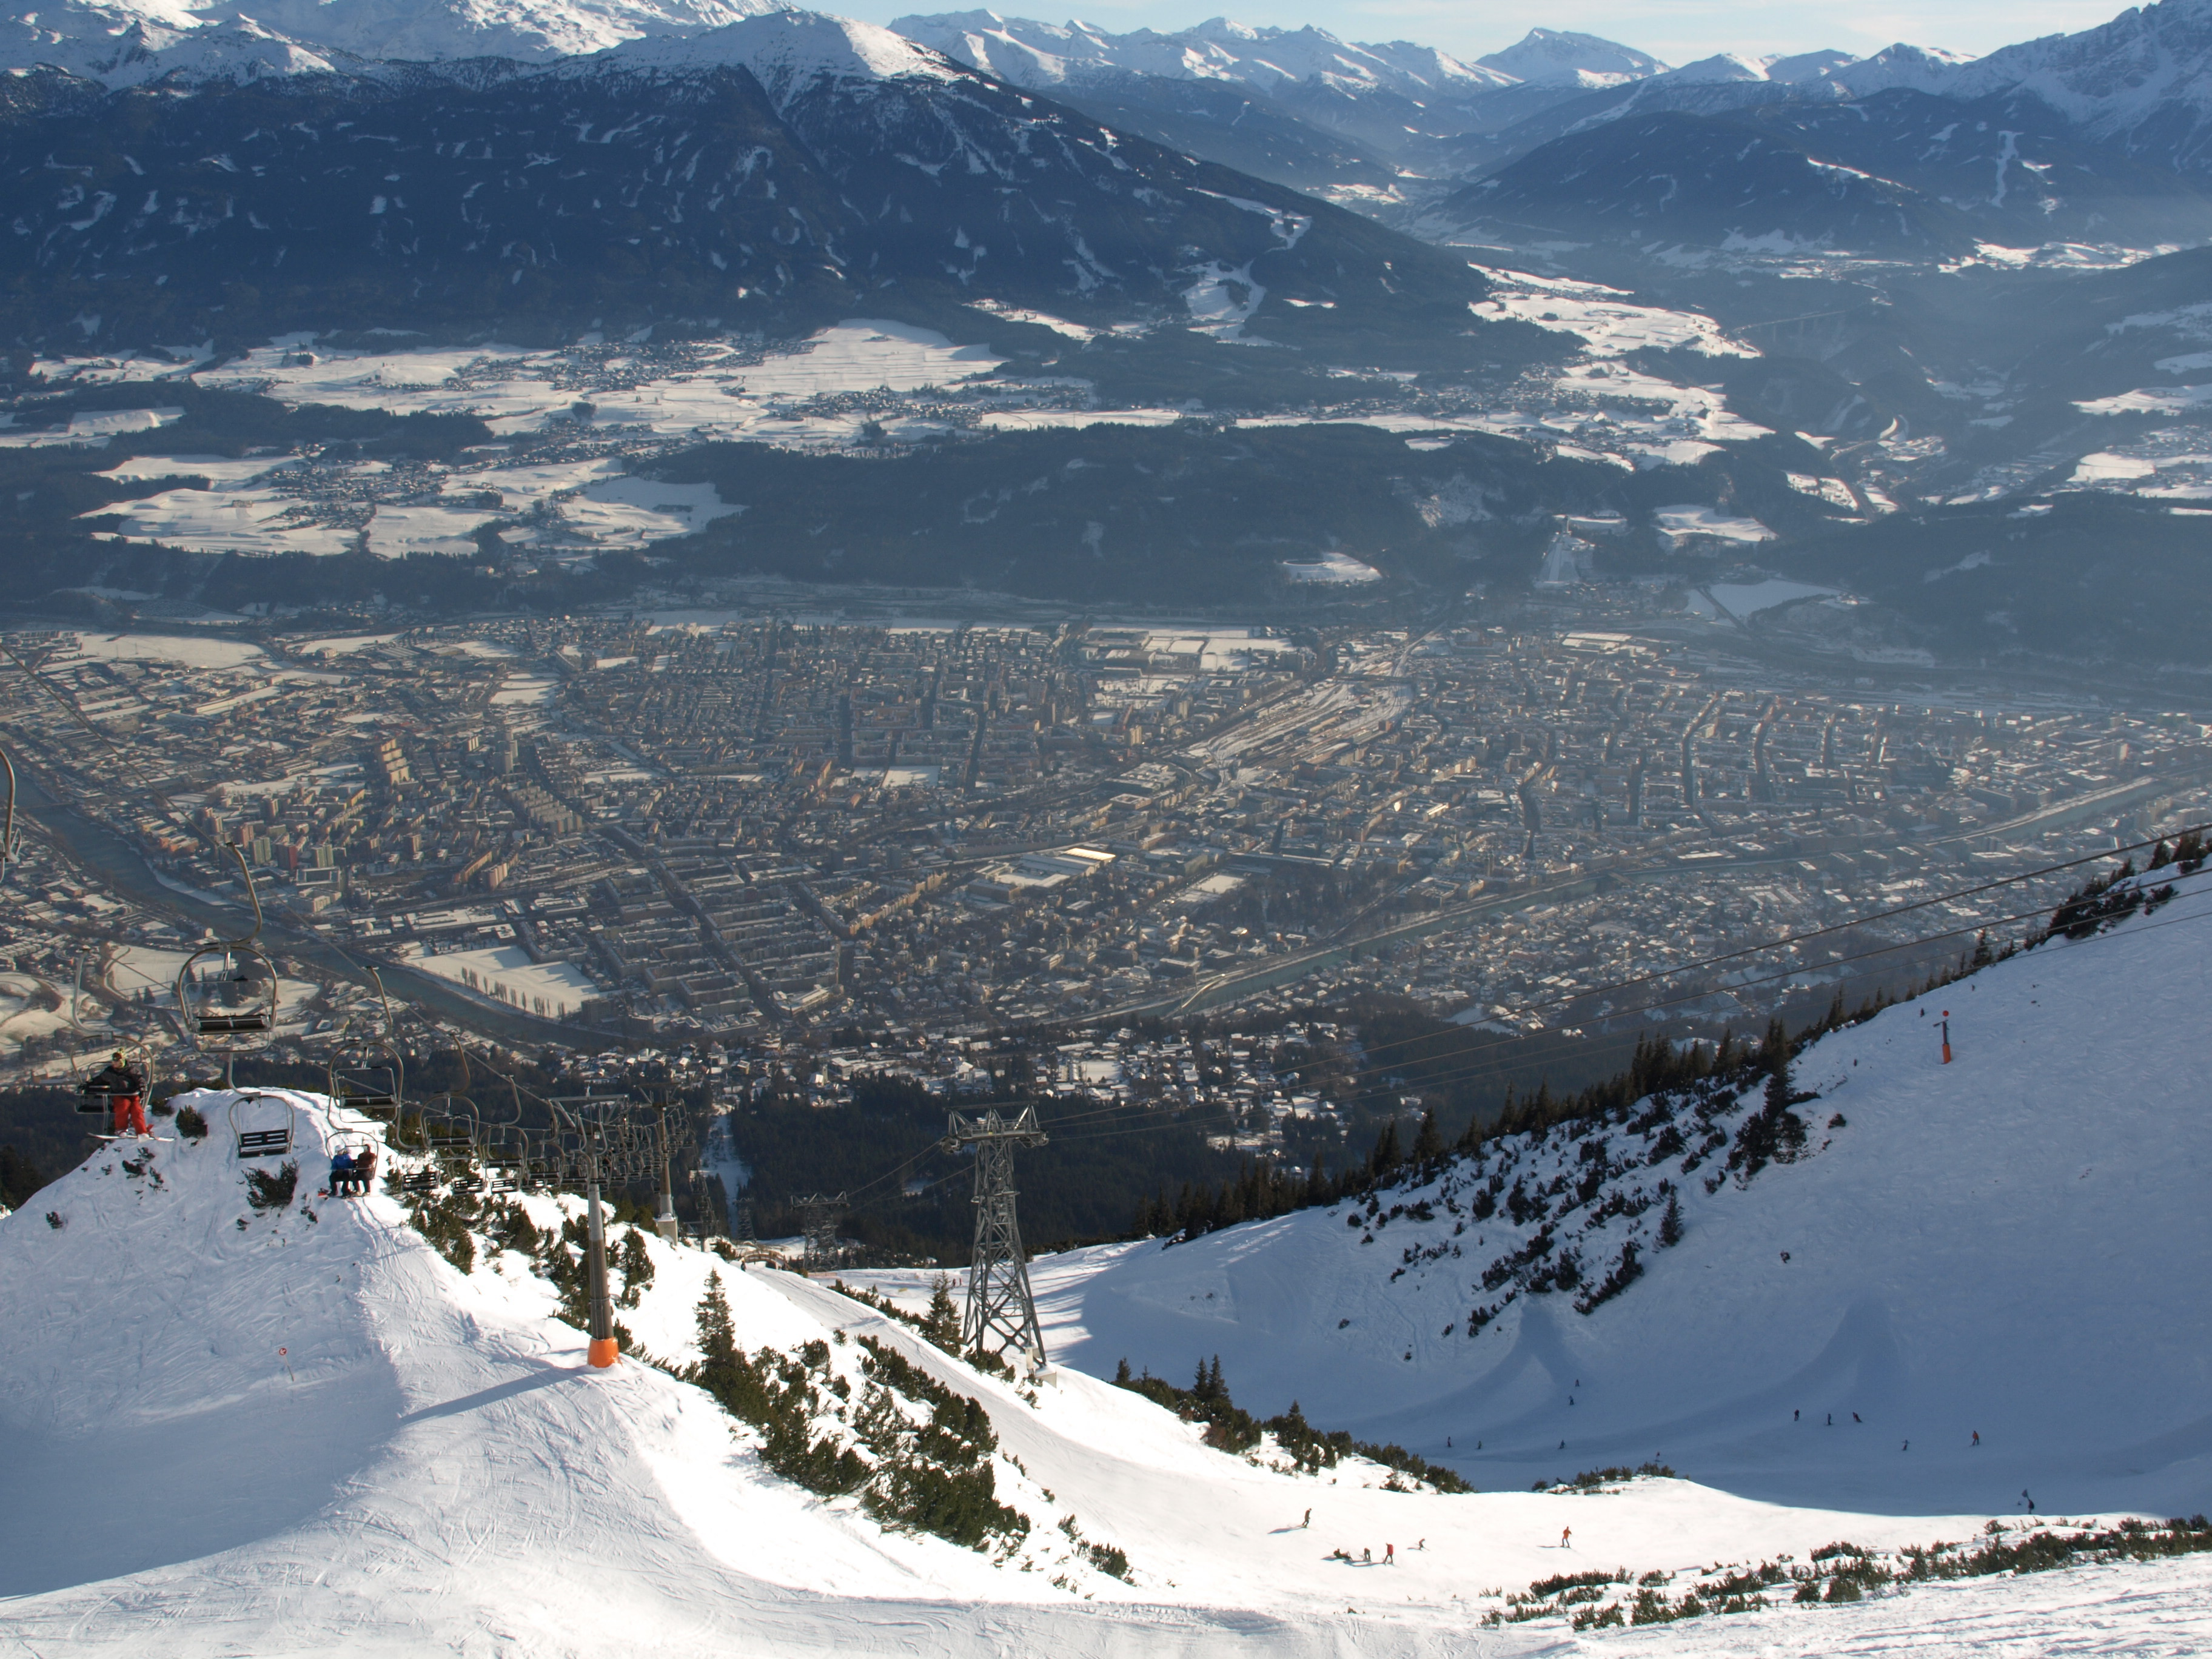 Innsbruck city and mountain backdrop